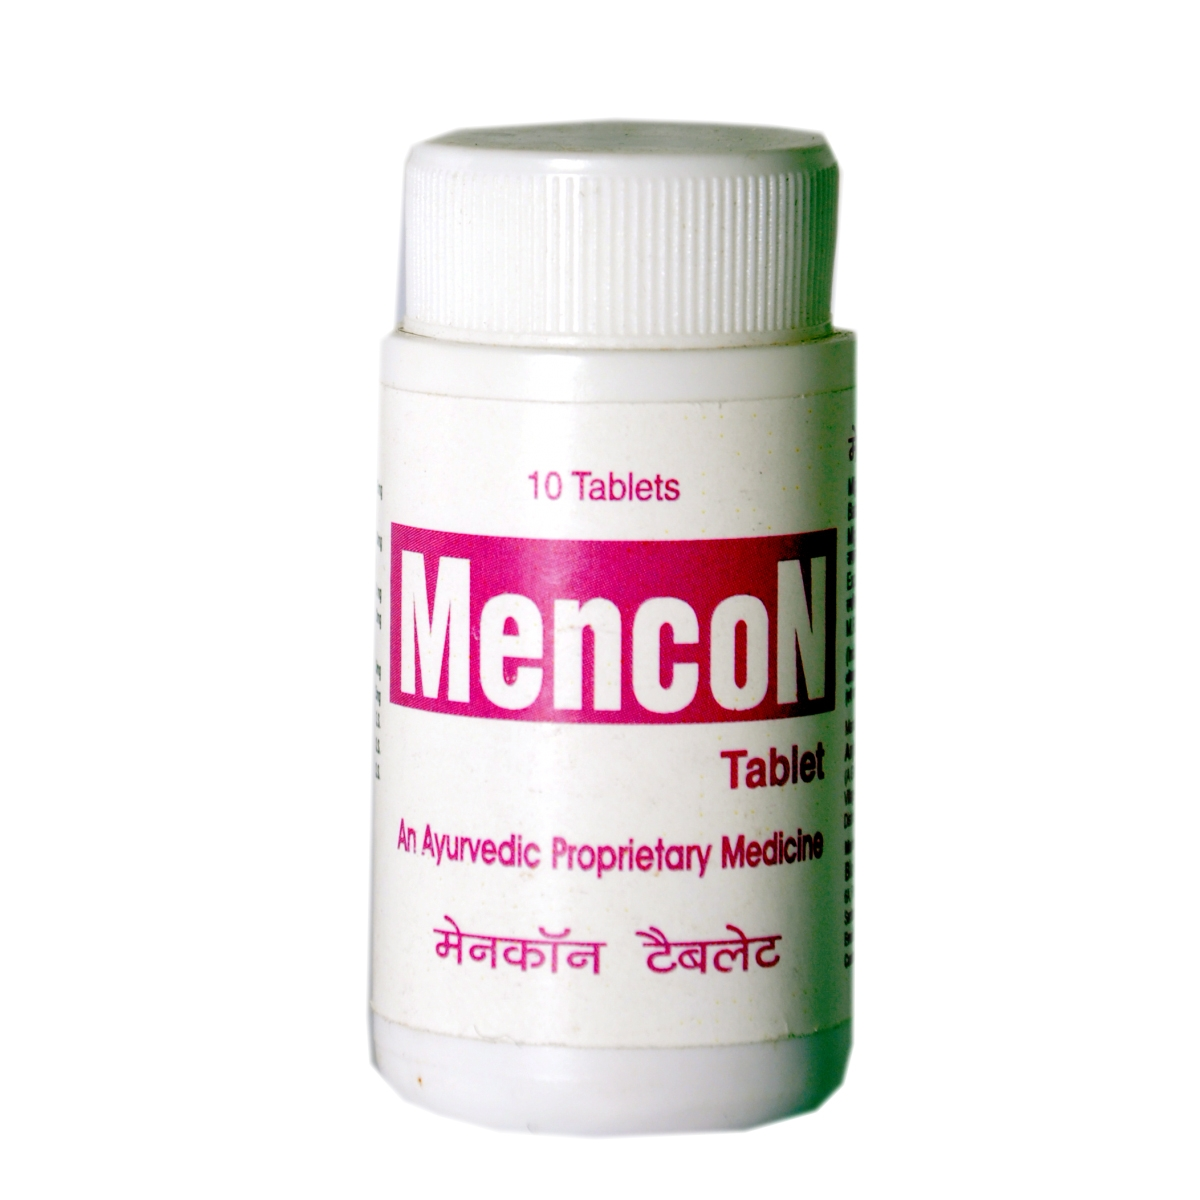 Mencon Tablet In Chhattisgarh